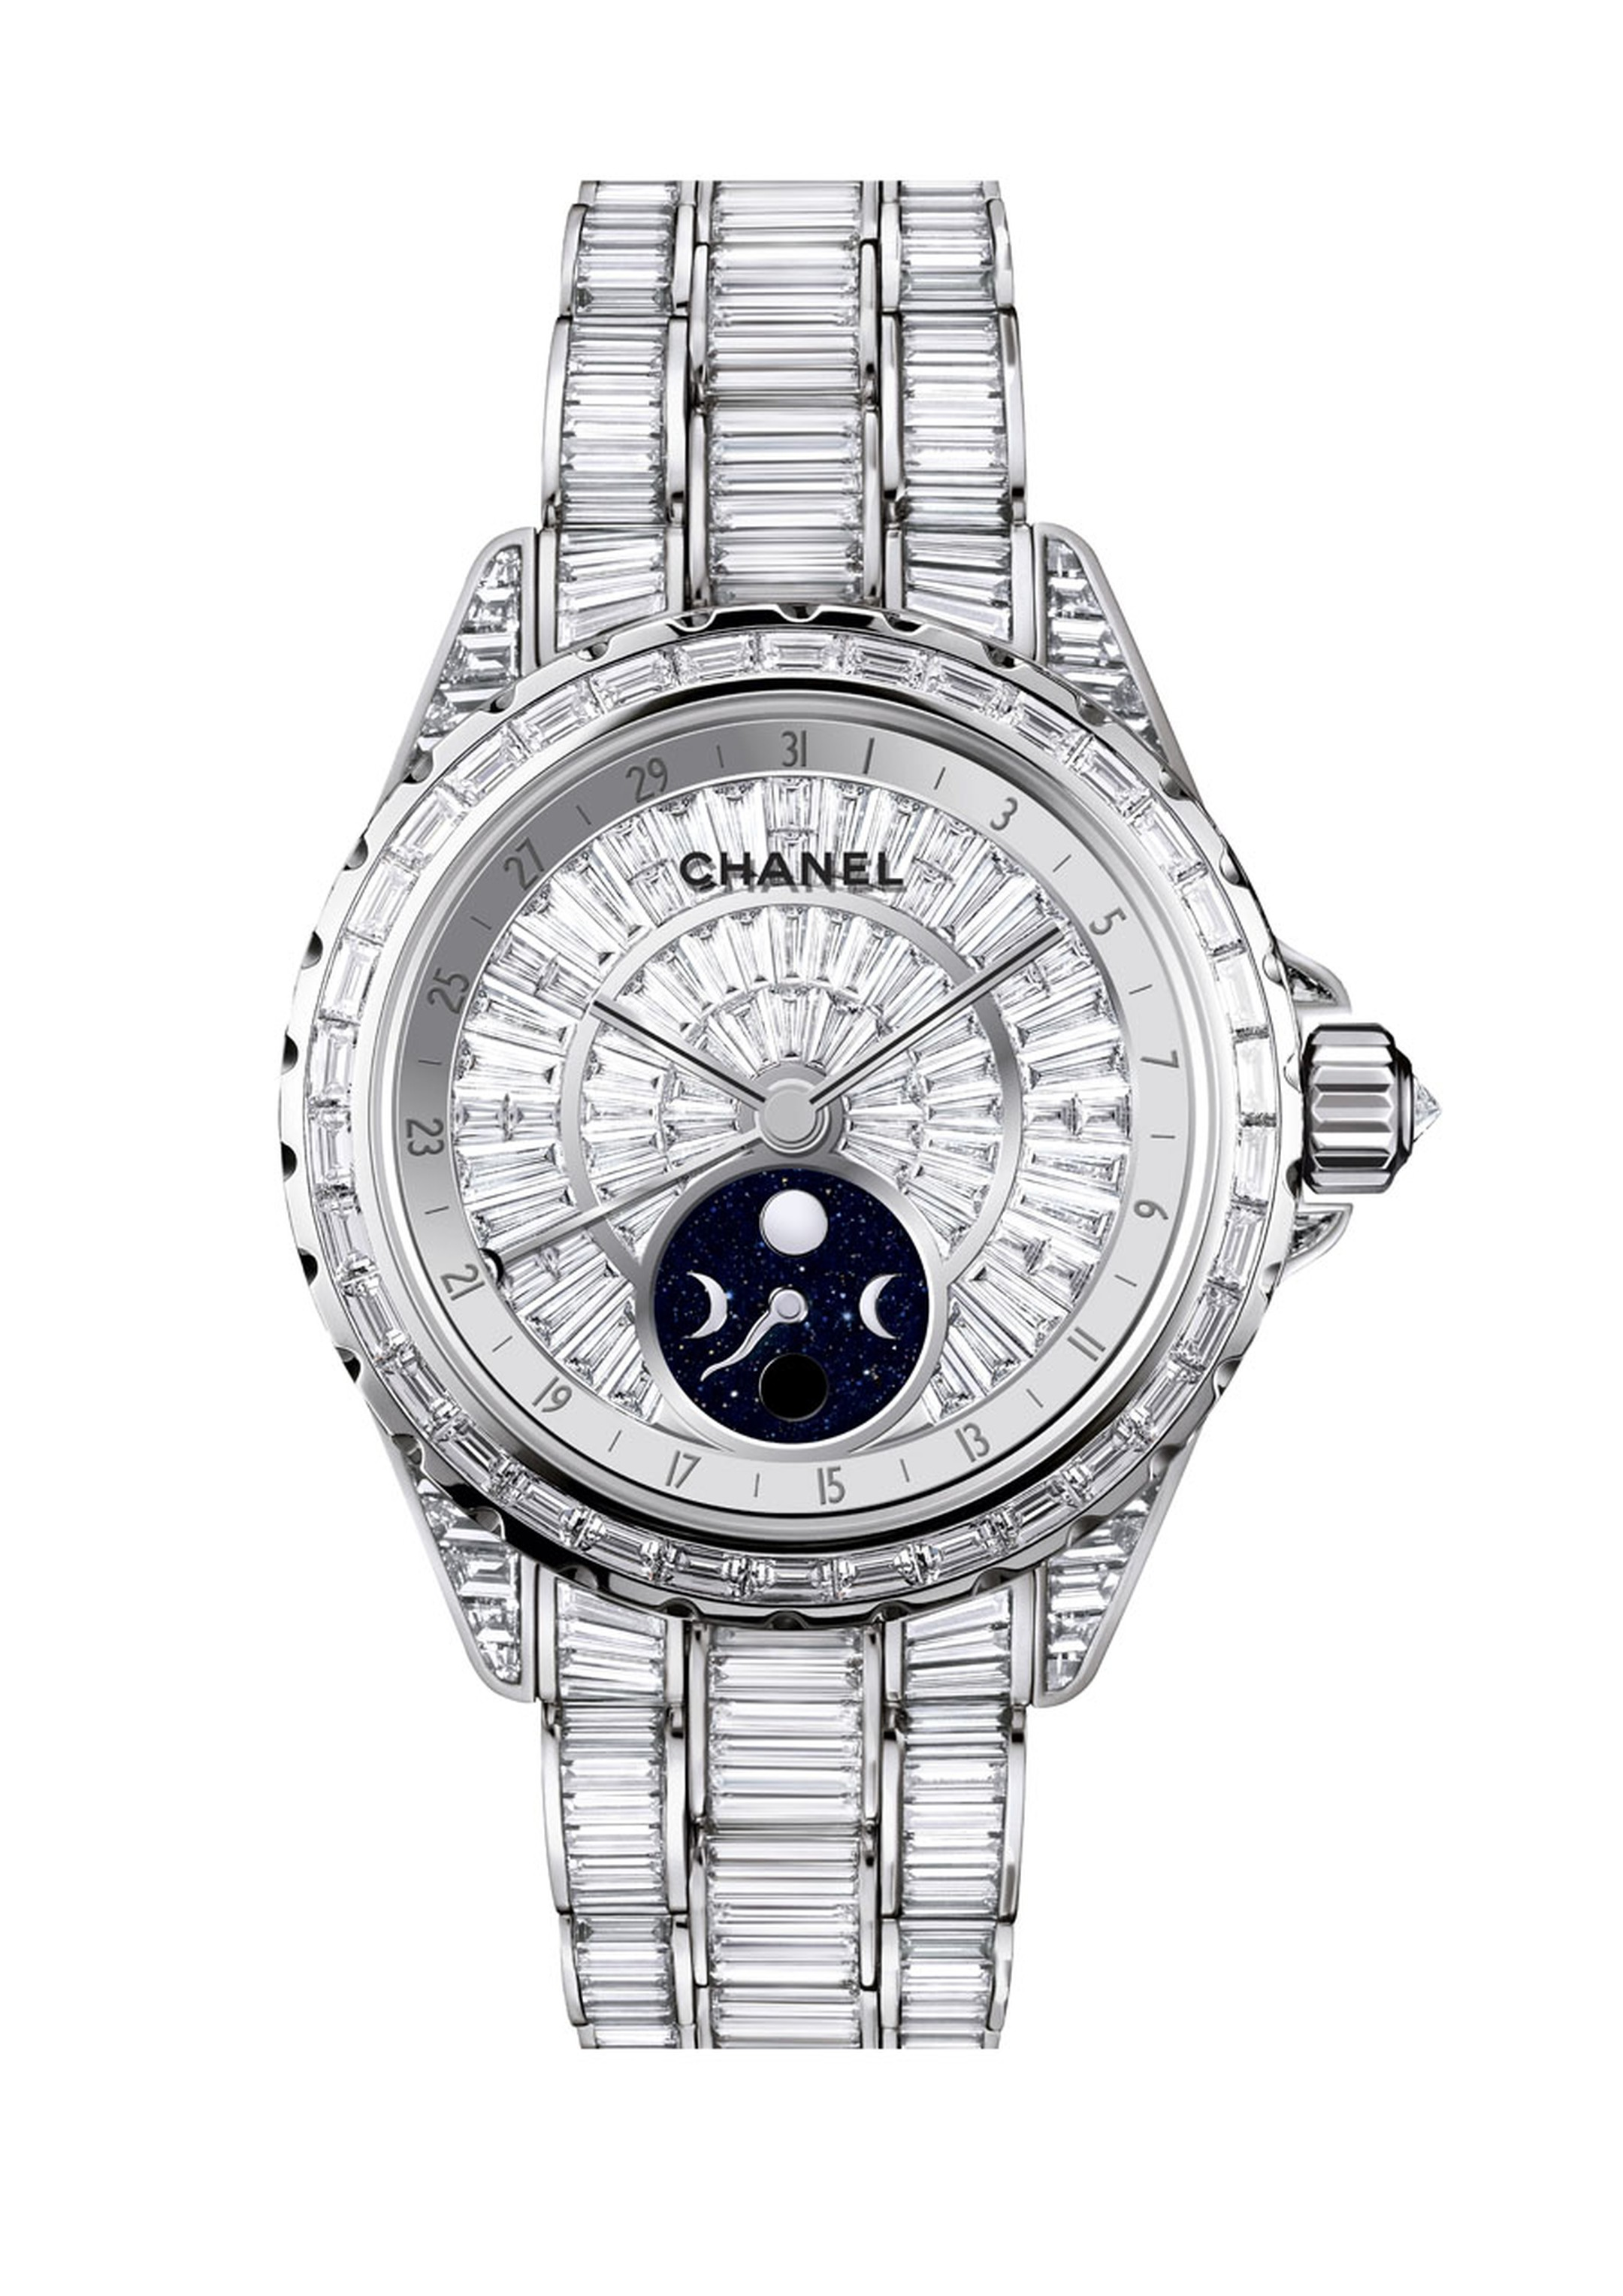 ChanelJ12MoonphaseWatch12.jpg